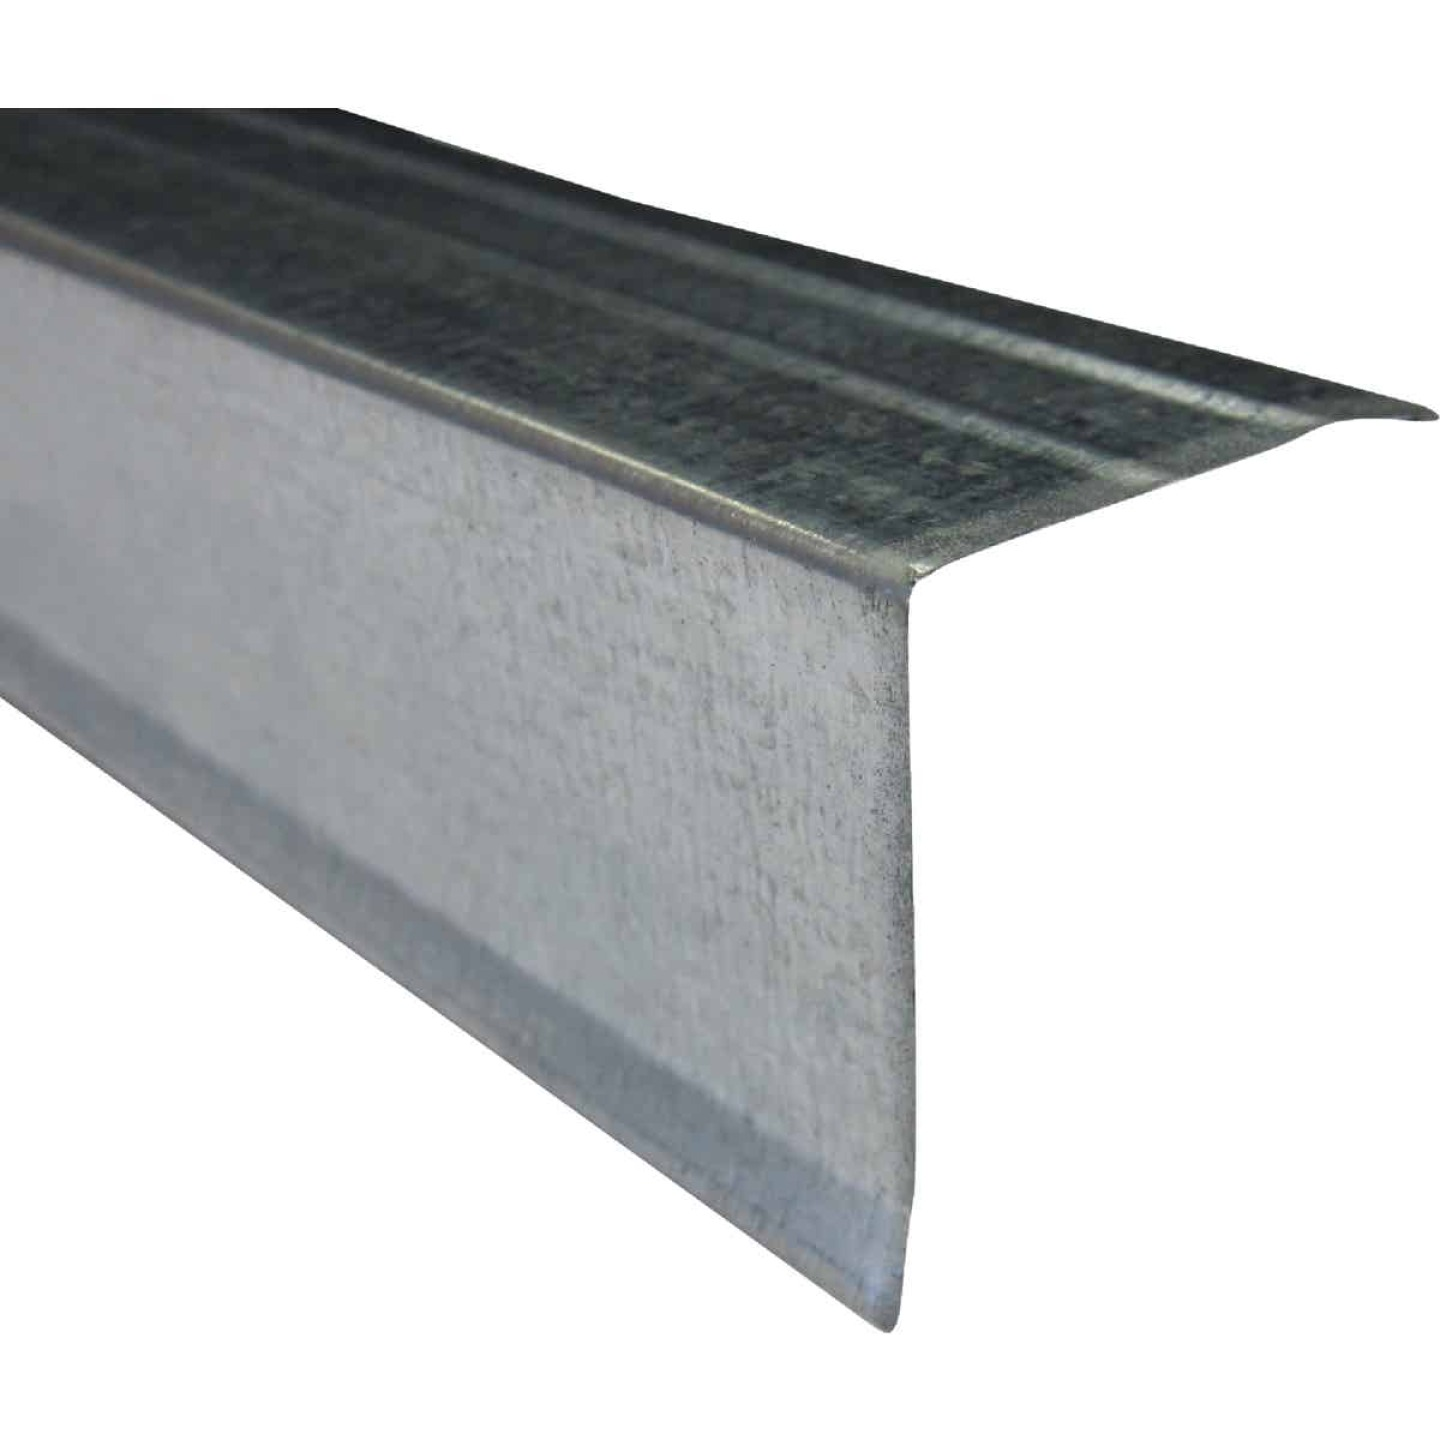 Klauer A3 Galvanized Steel Roof Edge Flashing Image 1